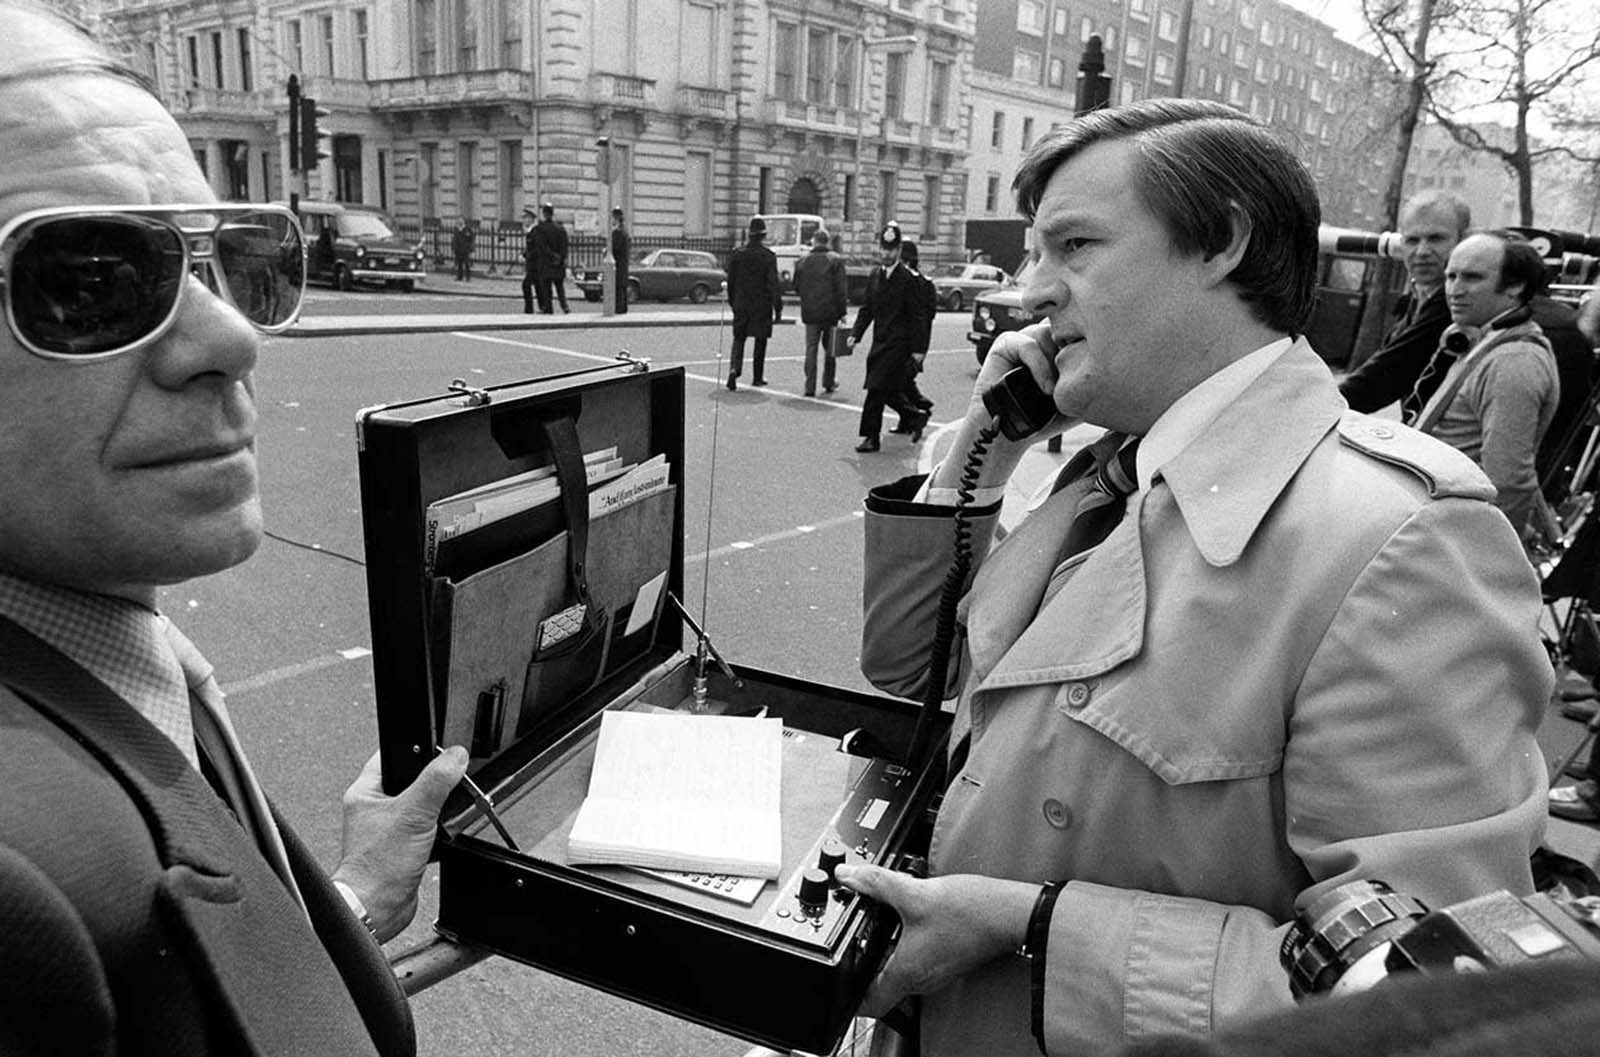 An early mobile phone used by a reporter, Kensington, London. 1983.